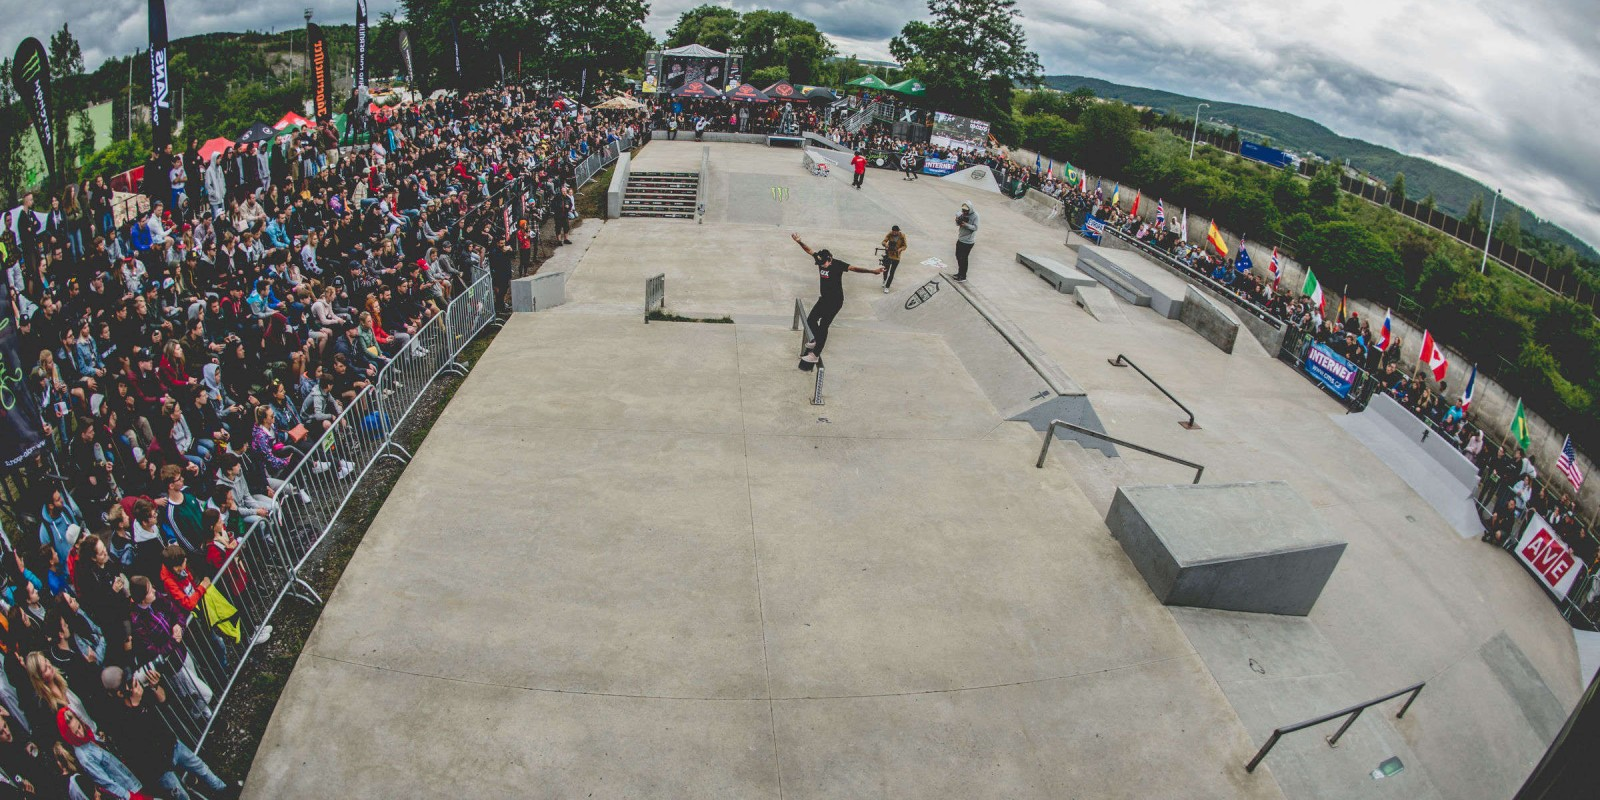 Grand Prix Beroun 2018 Skate competition